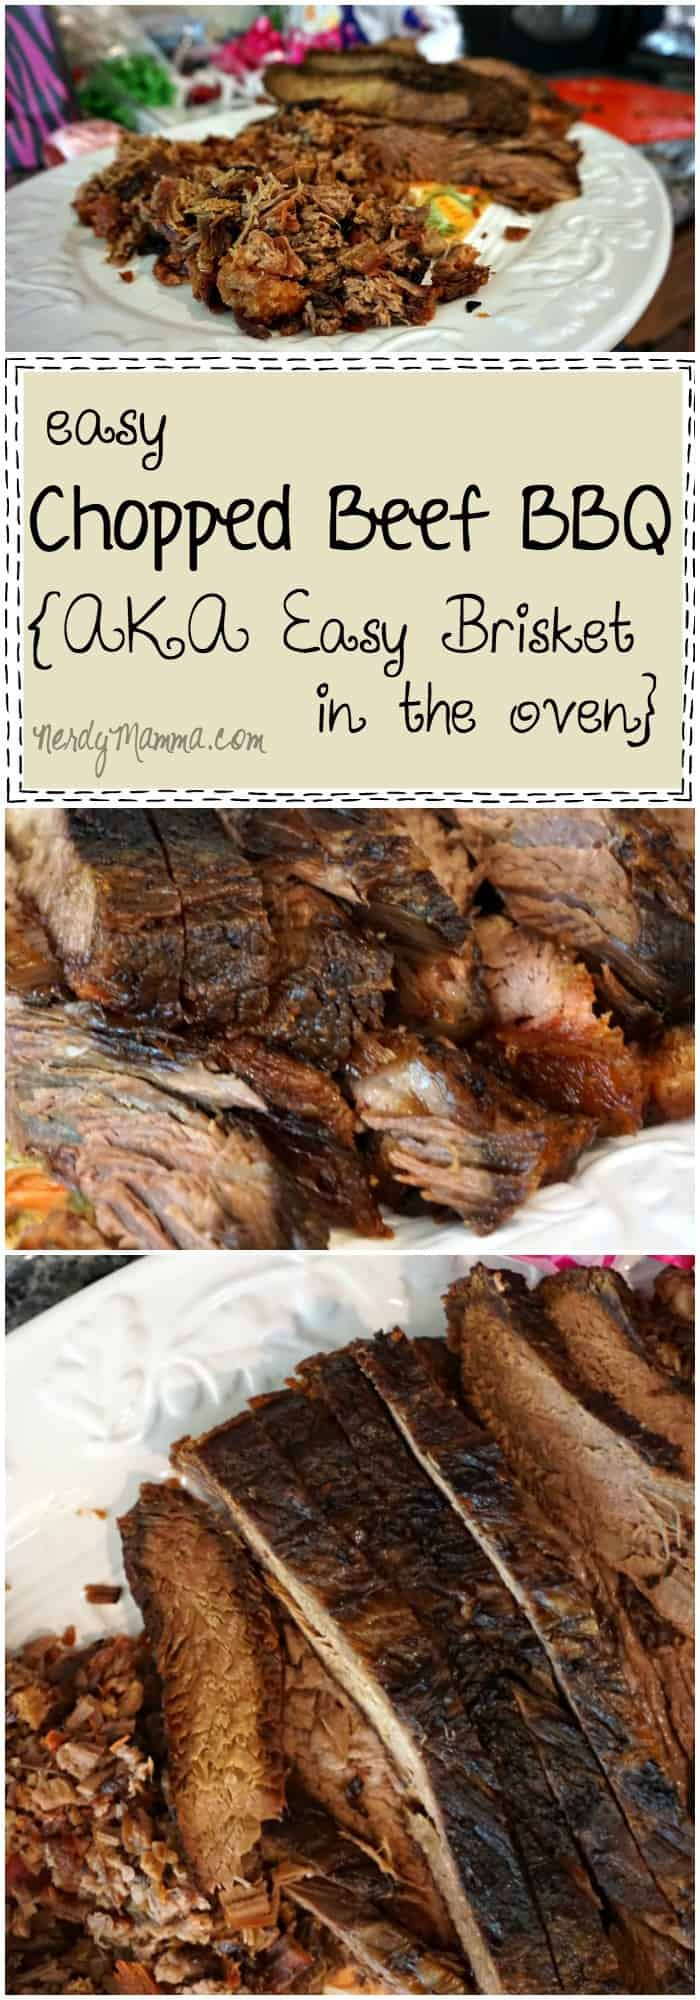 This recipe for easy chopped beef BBQ sounds--well, easy. And I thought making brisket would be hard...LOL!